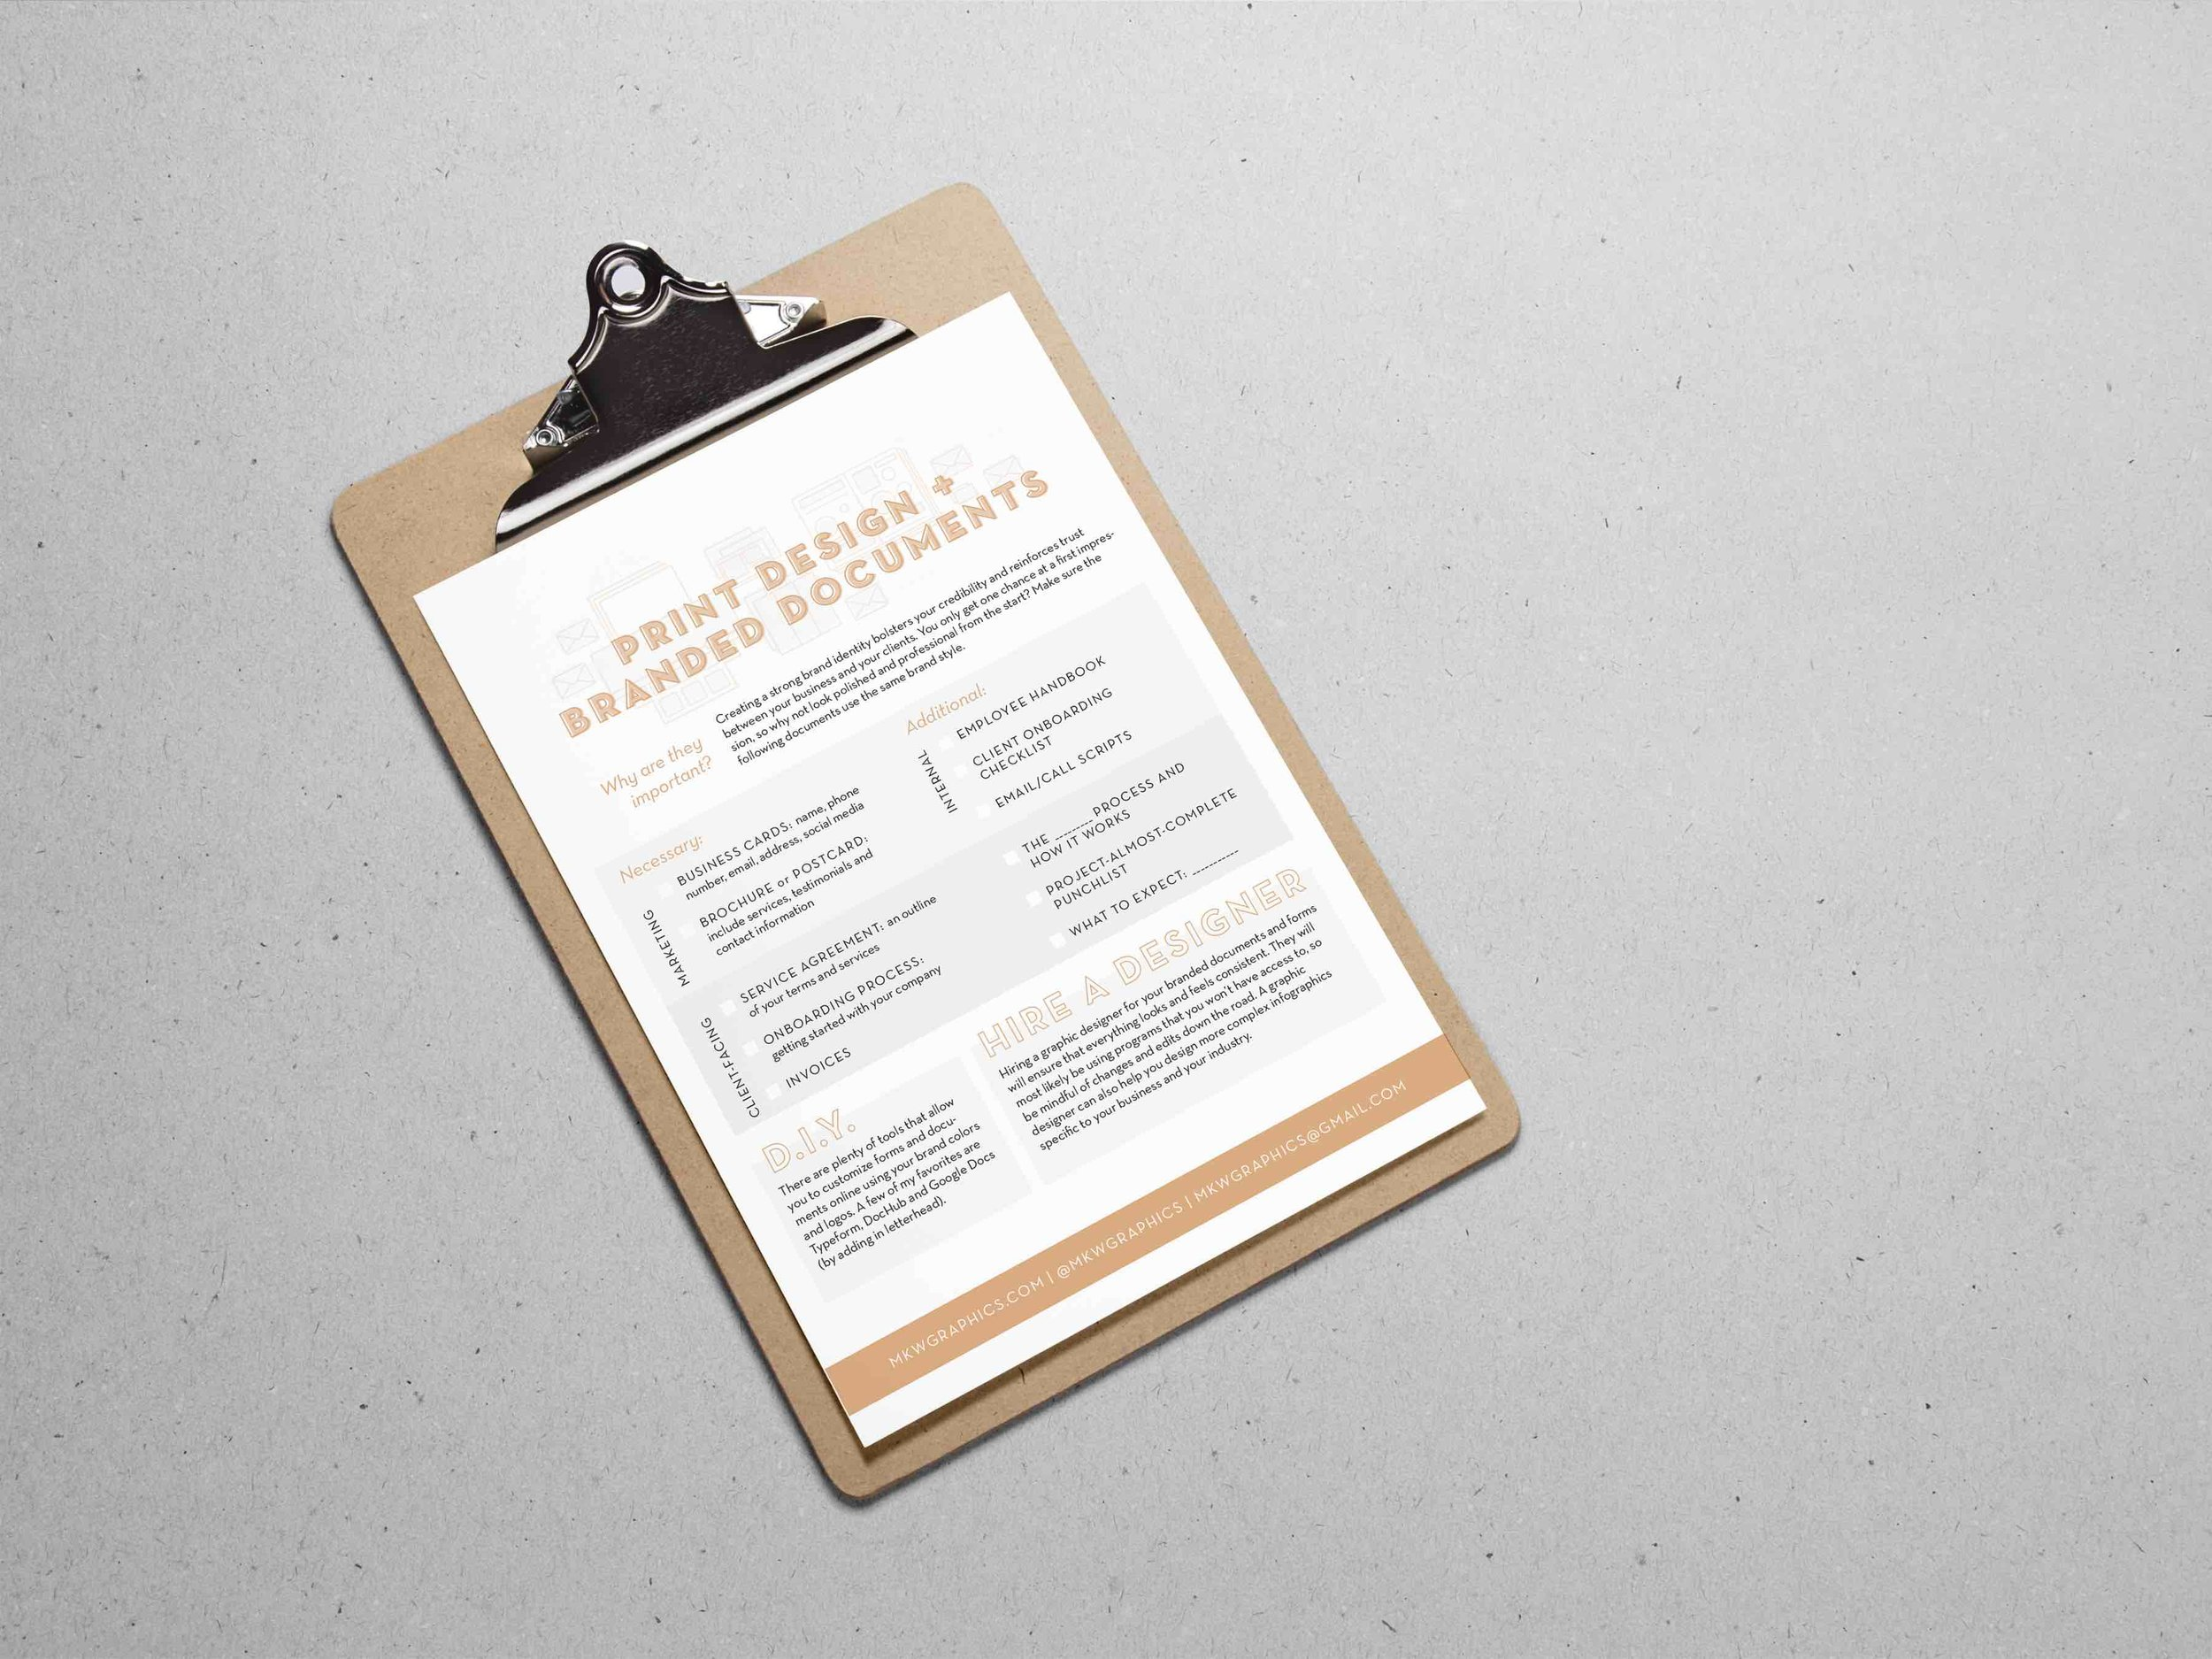 free branded document guides